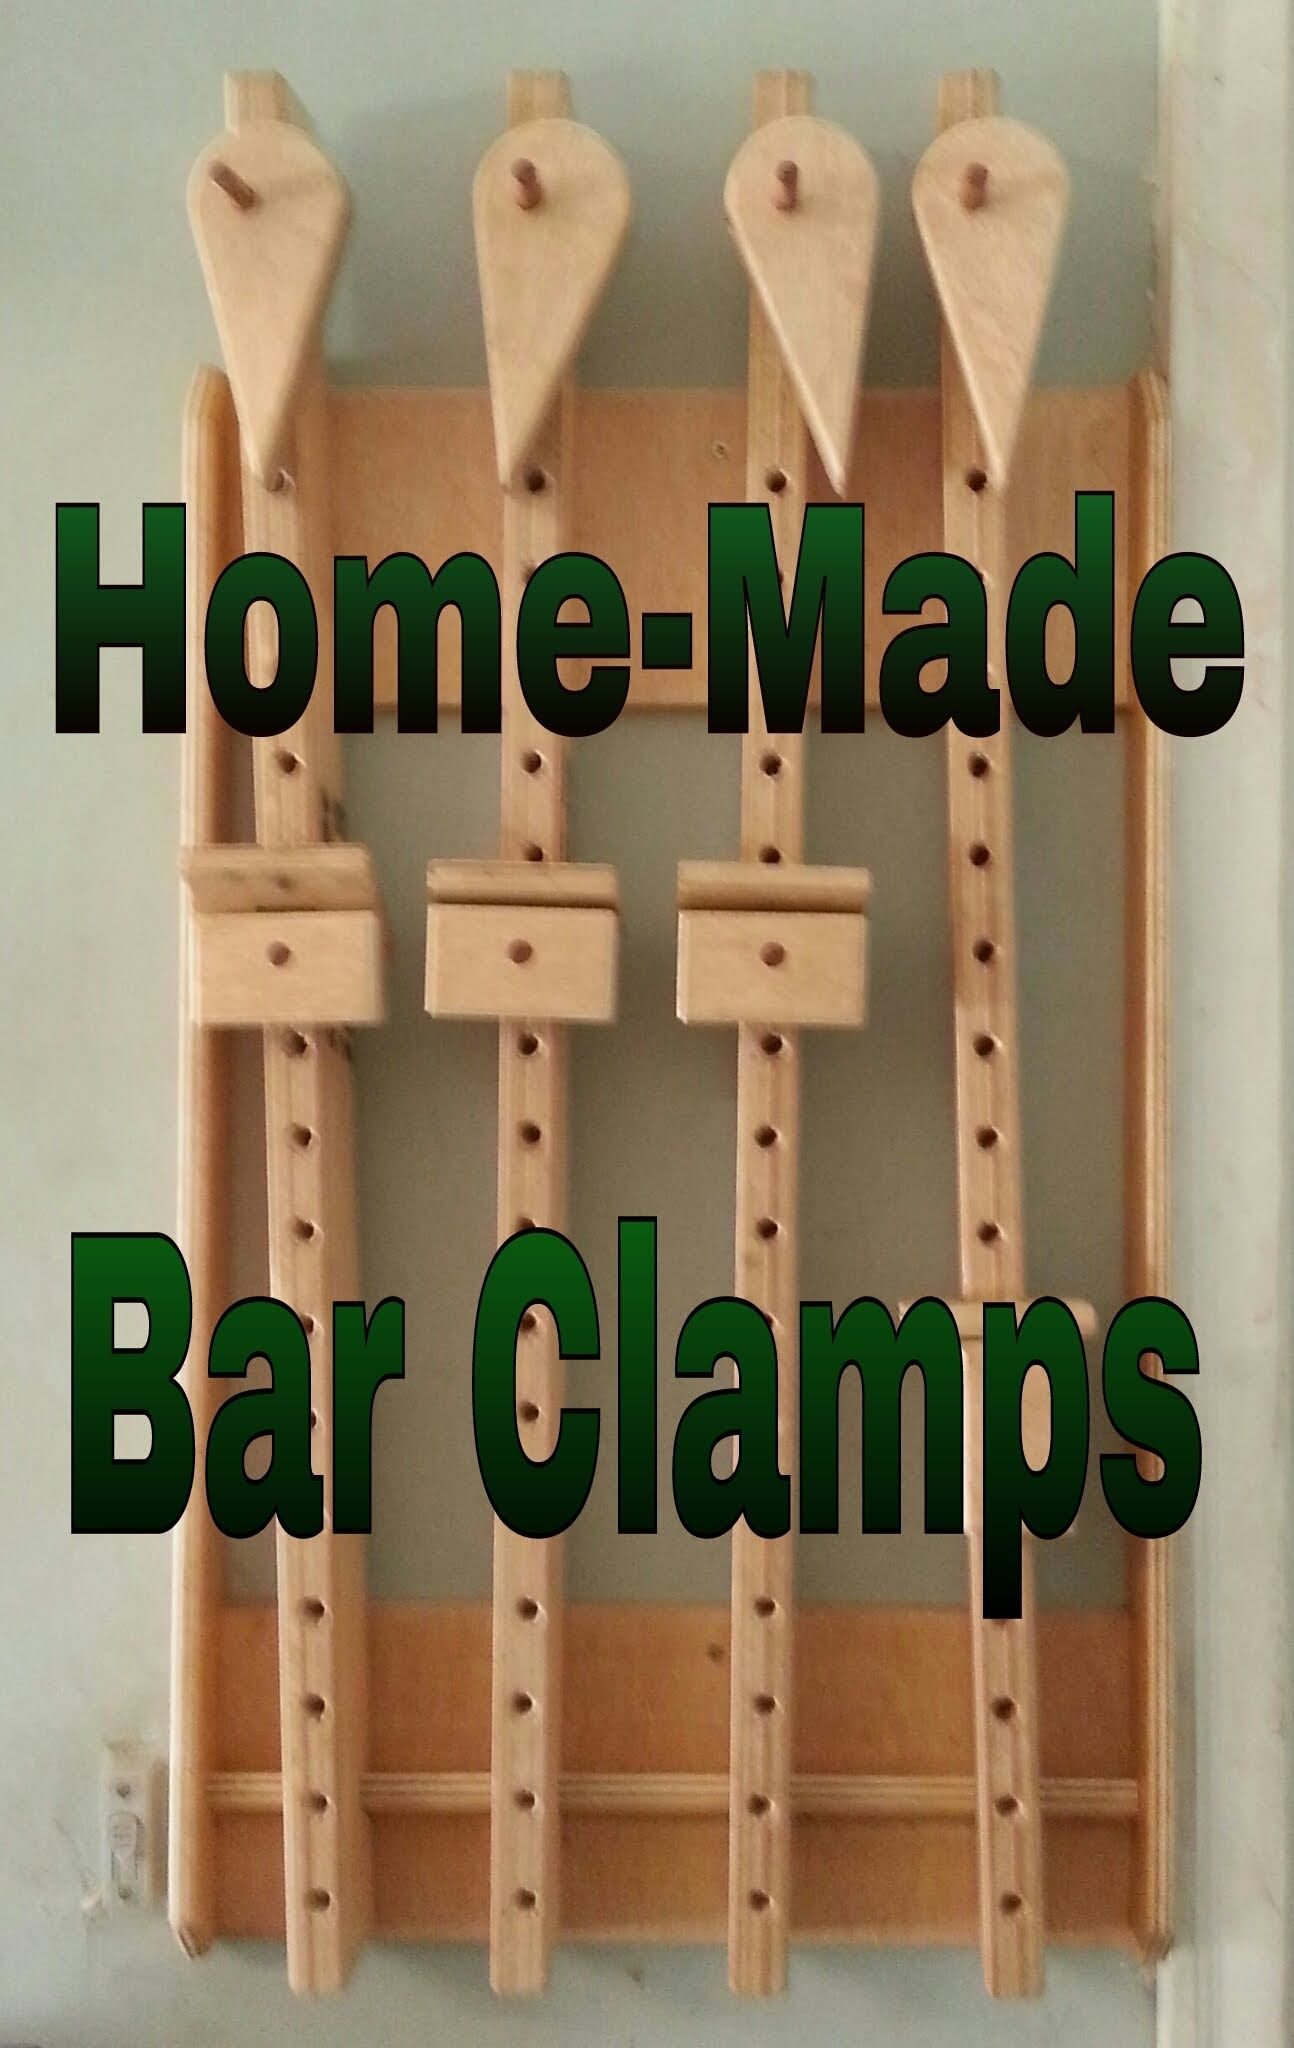 Homemade Bar Clamps! These are simple and look easy to make. Not for ...